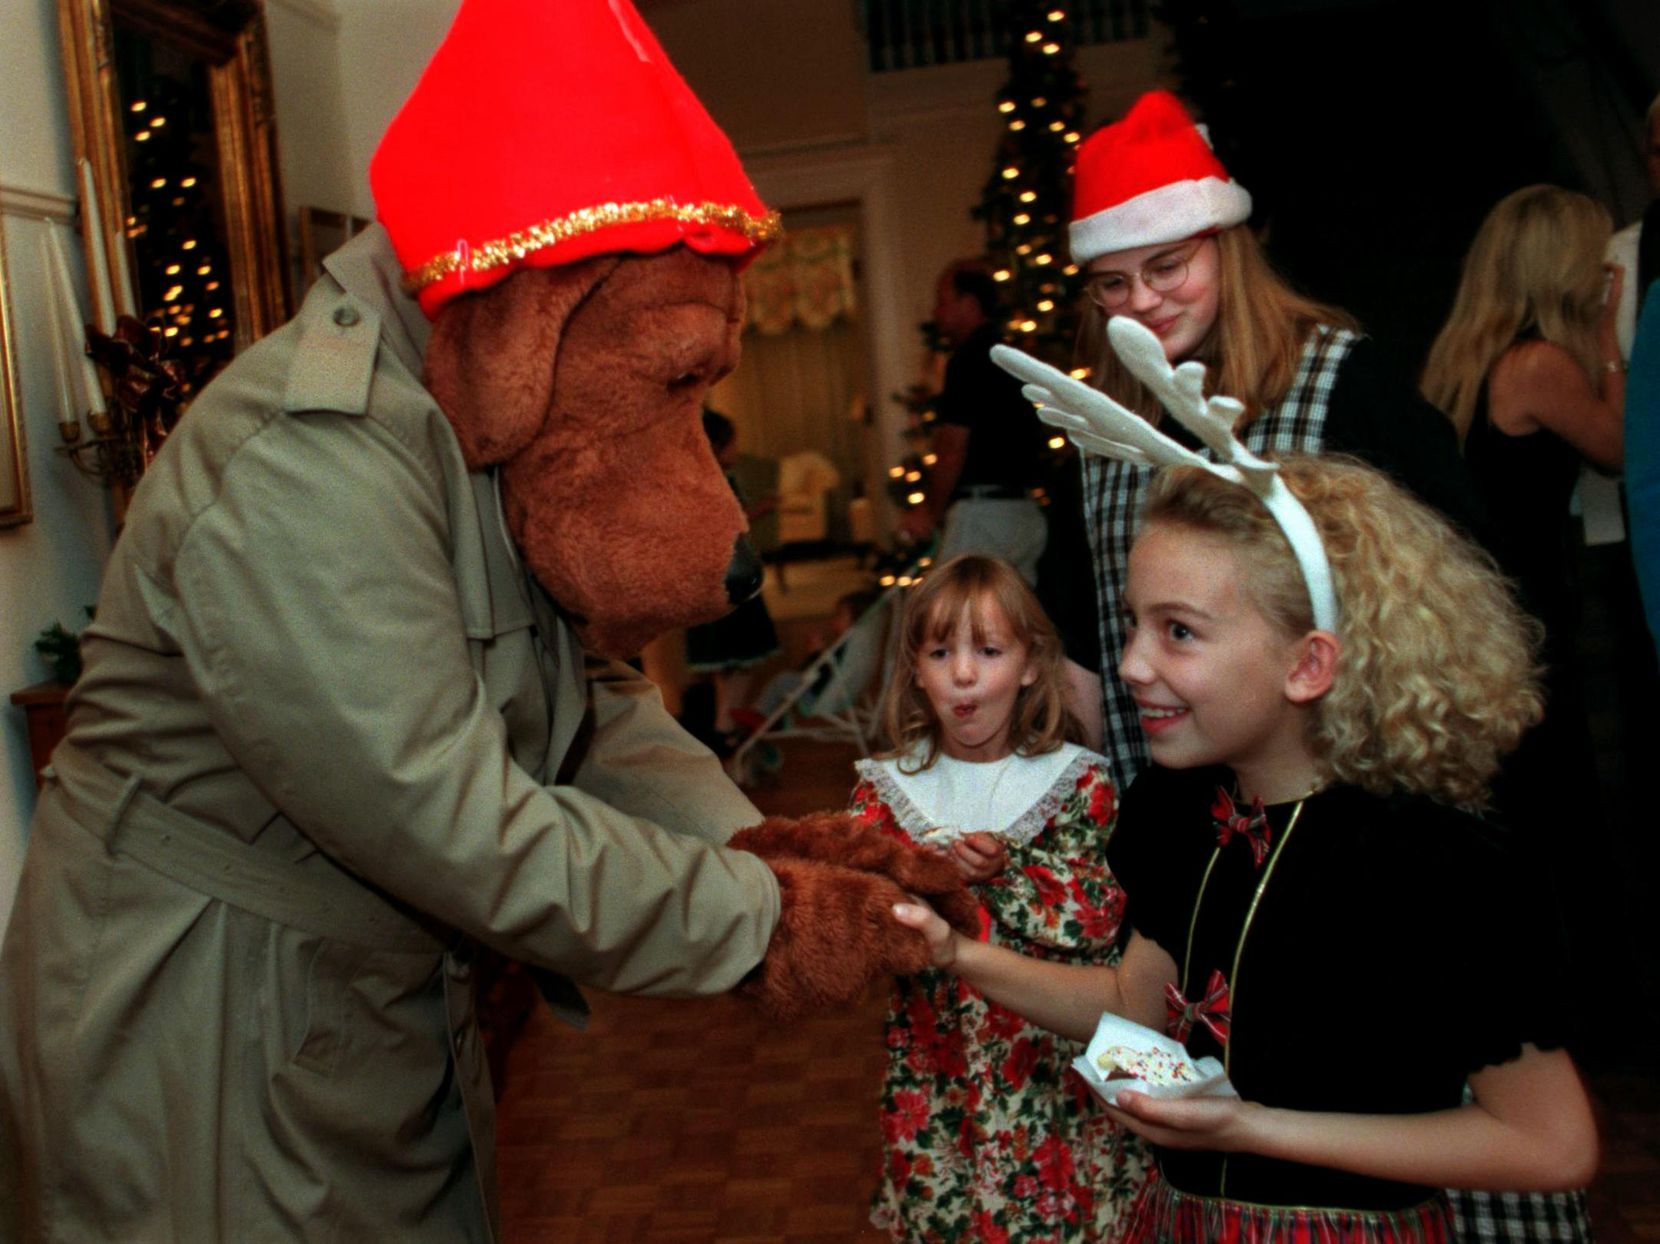 McGruff the Crime Dog, left, greets Scarlett Deering, then 9, right, while her sisters Savannah, 5, and Joanna Deering, 14, look on at the 91st birthday celebration of Winnetka Heights community at historic J. P. Blake House in Oak Cliff.